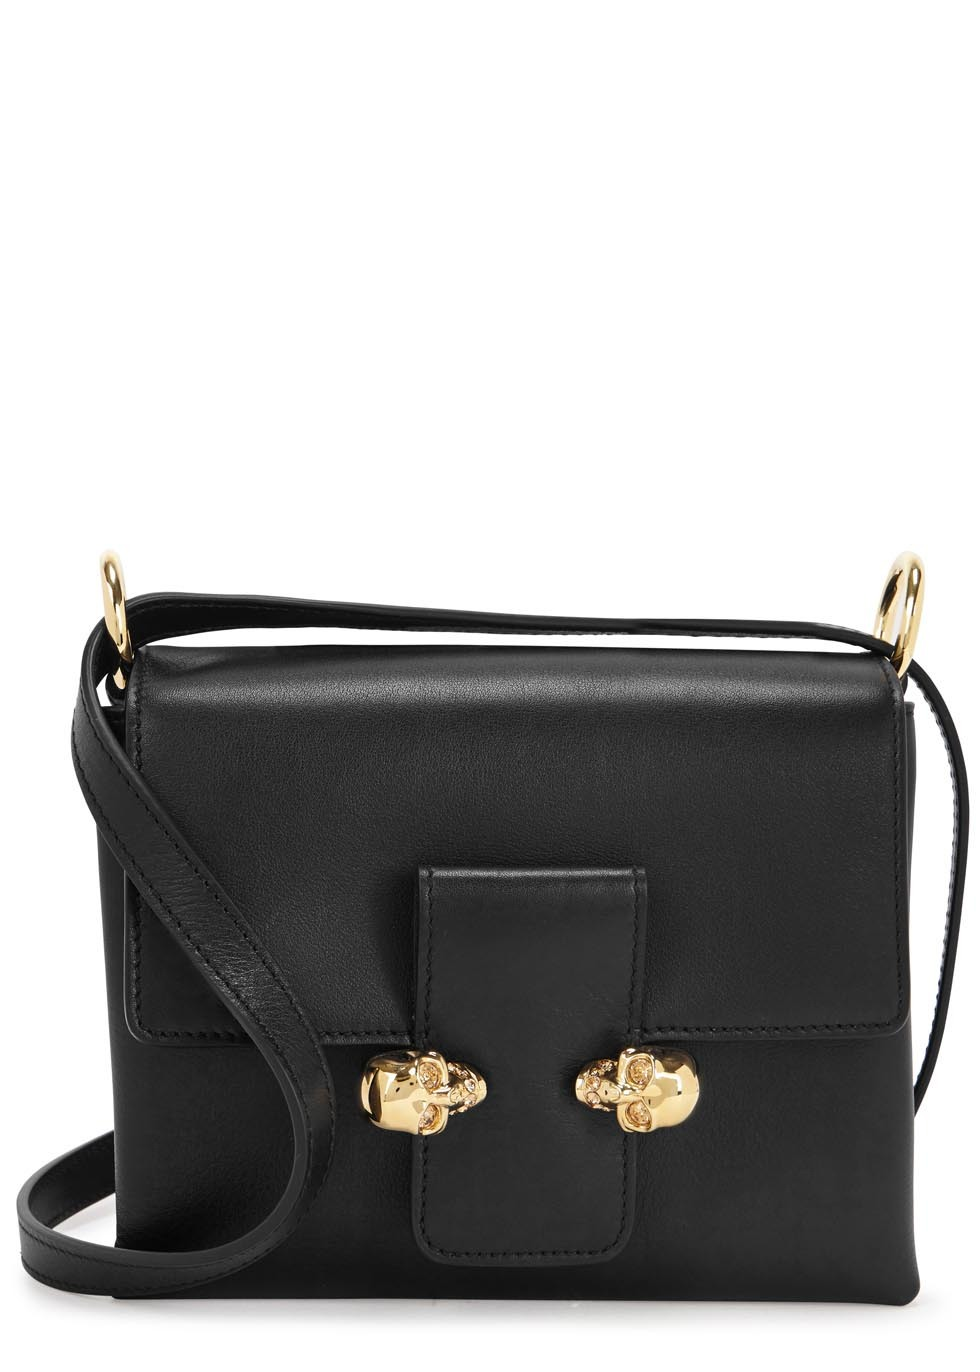 Black Leather Skull Embellished Cross Body Bag - secondary colour: gold; predominant colour: black; occasions: casual; type of pattern: standard; style: messenger; length: across body/long; size: small; material: leather; pattern: plain; finish: plain; season: s/s 2016; wardrobe: basic